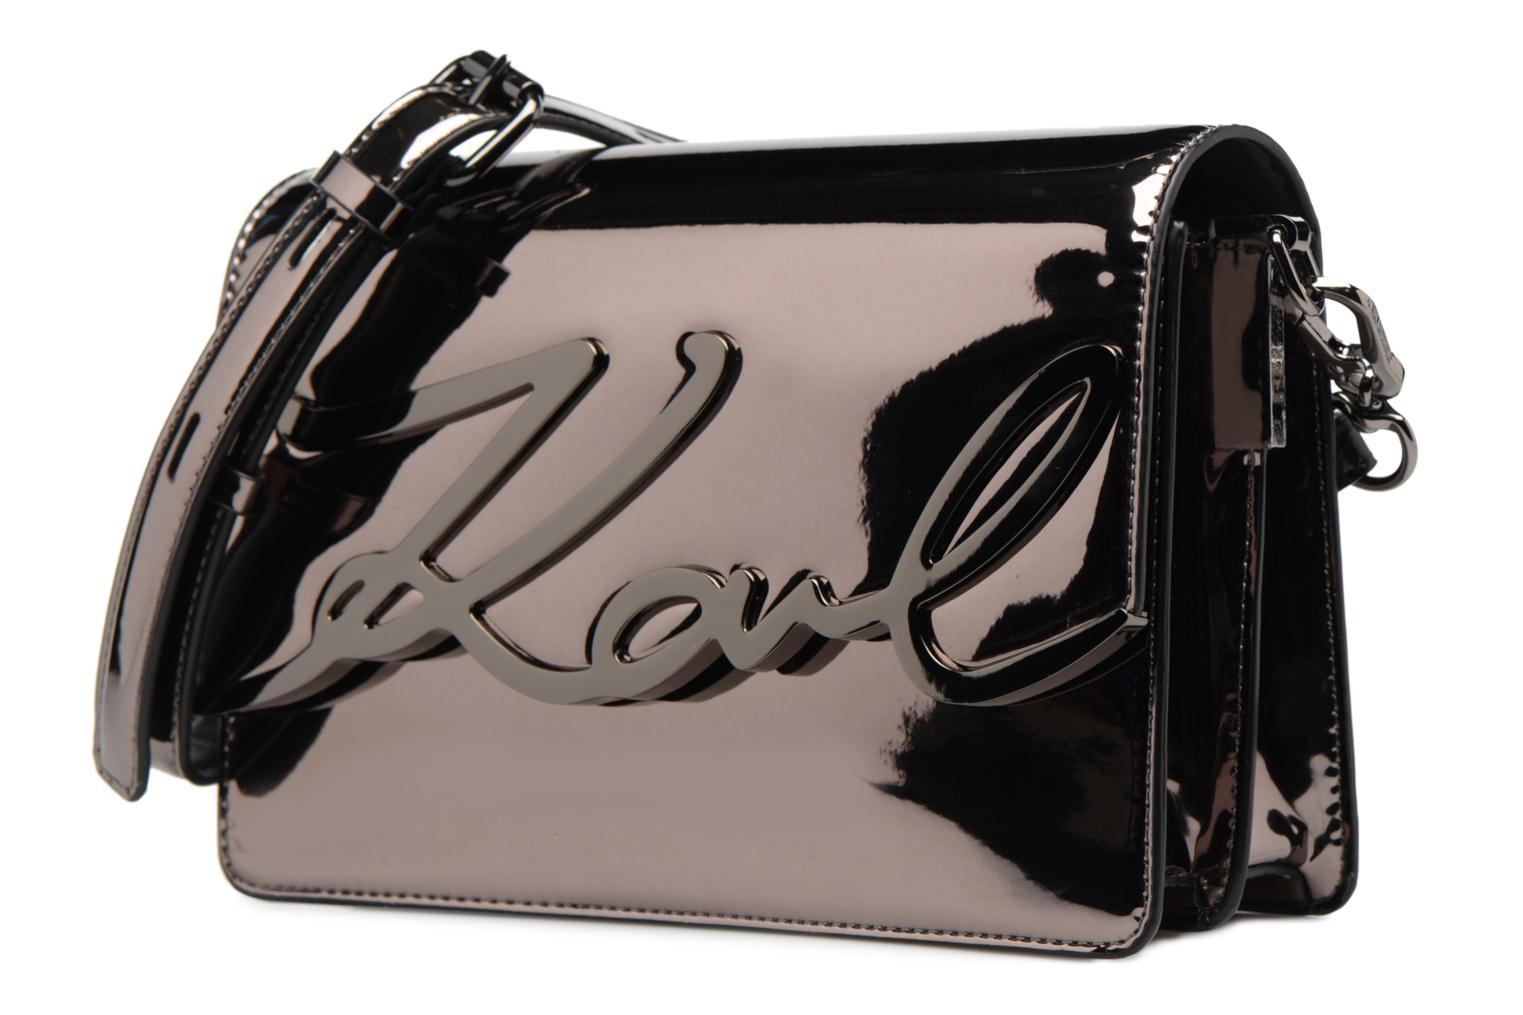 K A975 NICKEL Metallic Shoulder LAGERFELD Signature Bag Gloss KARL wnUZq5Pzw